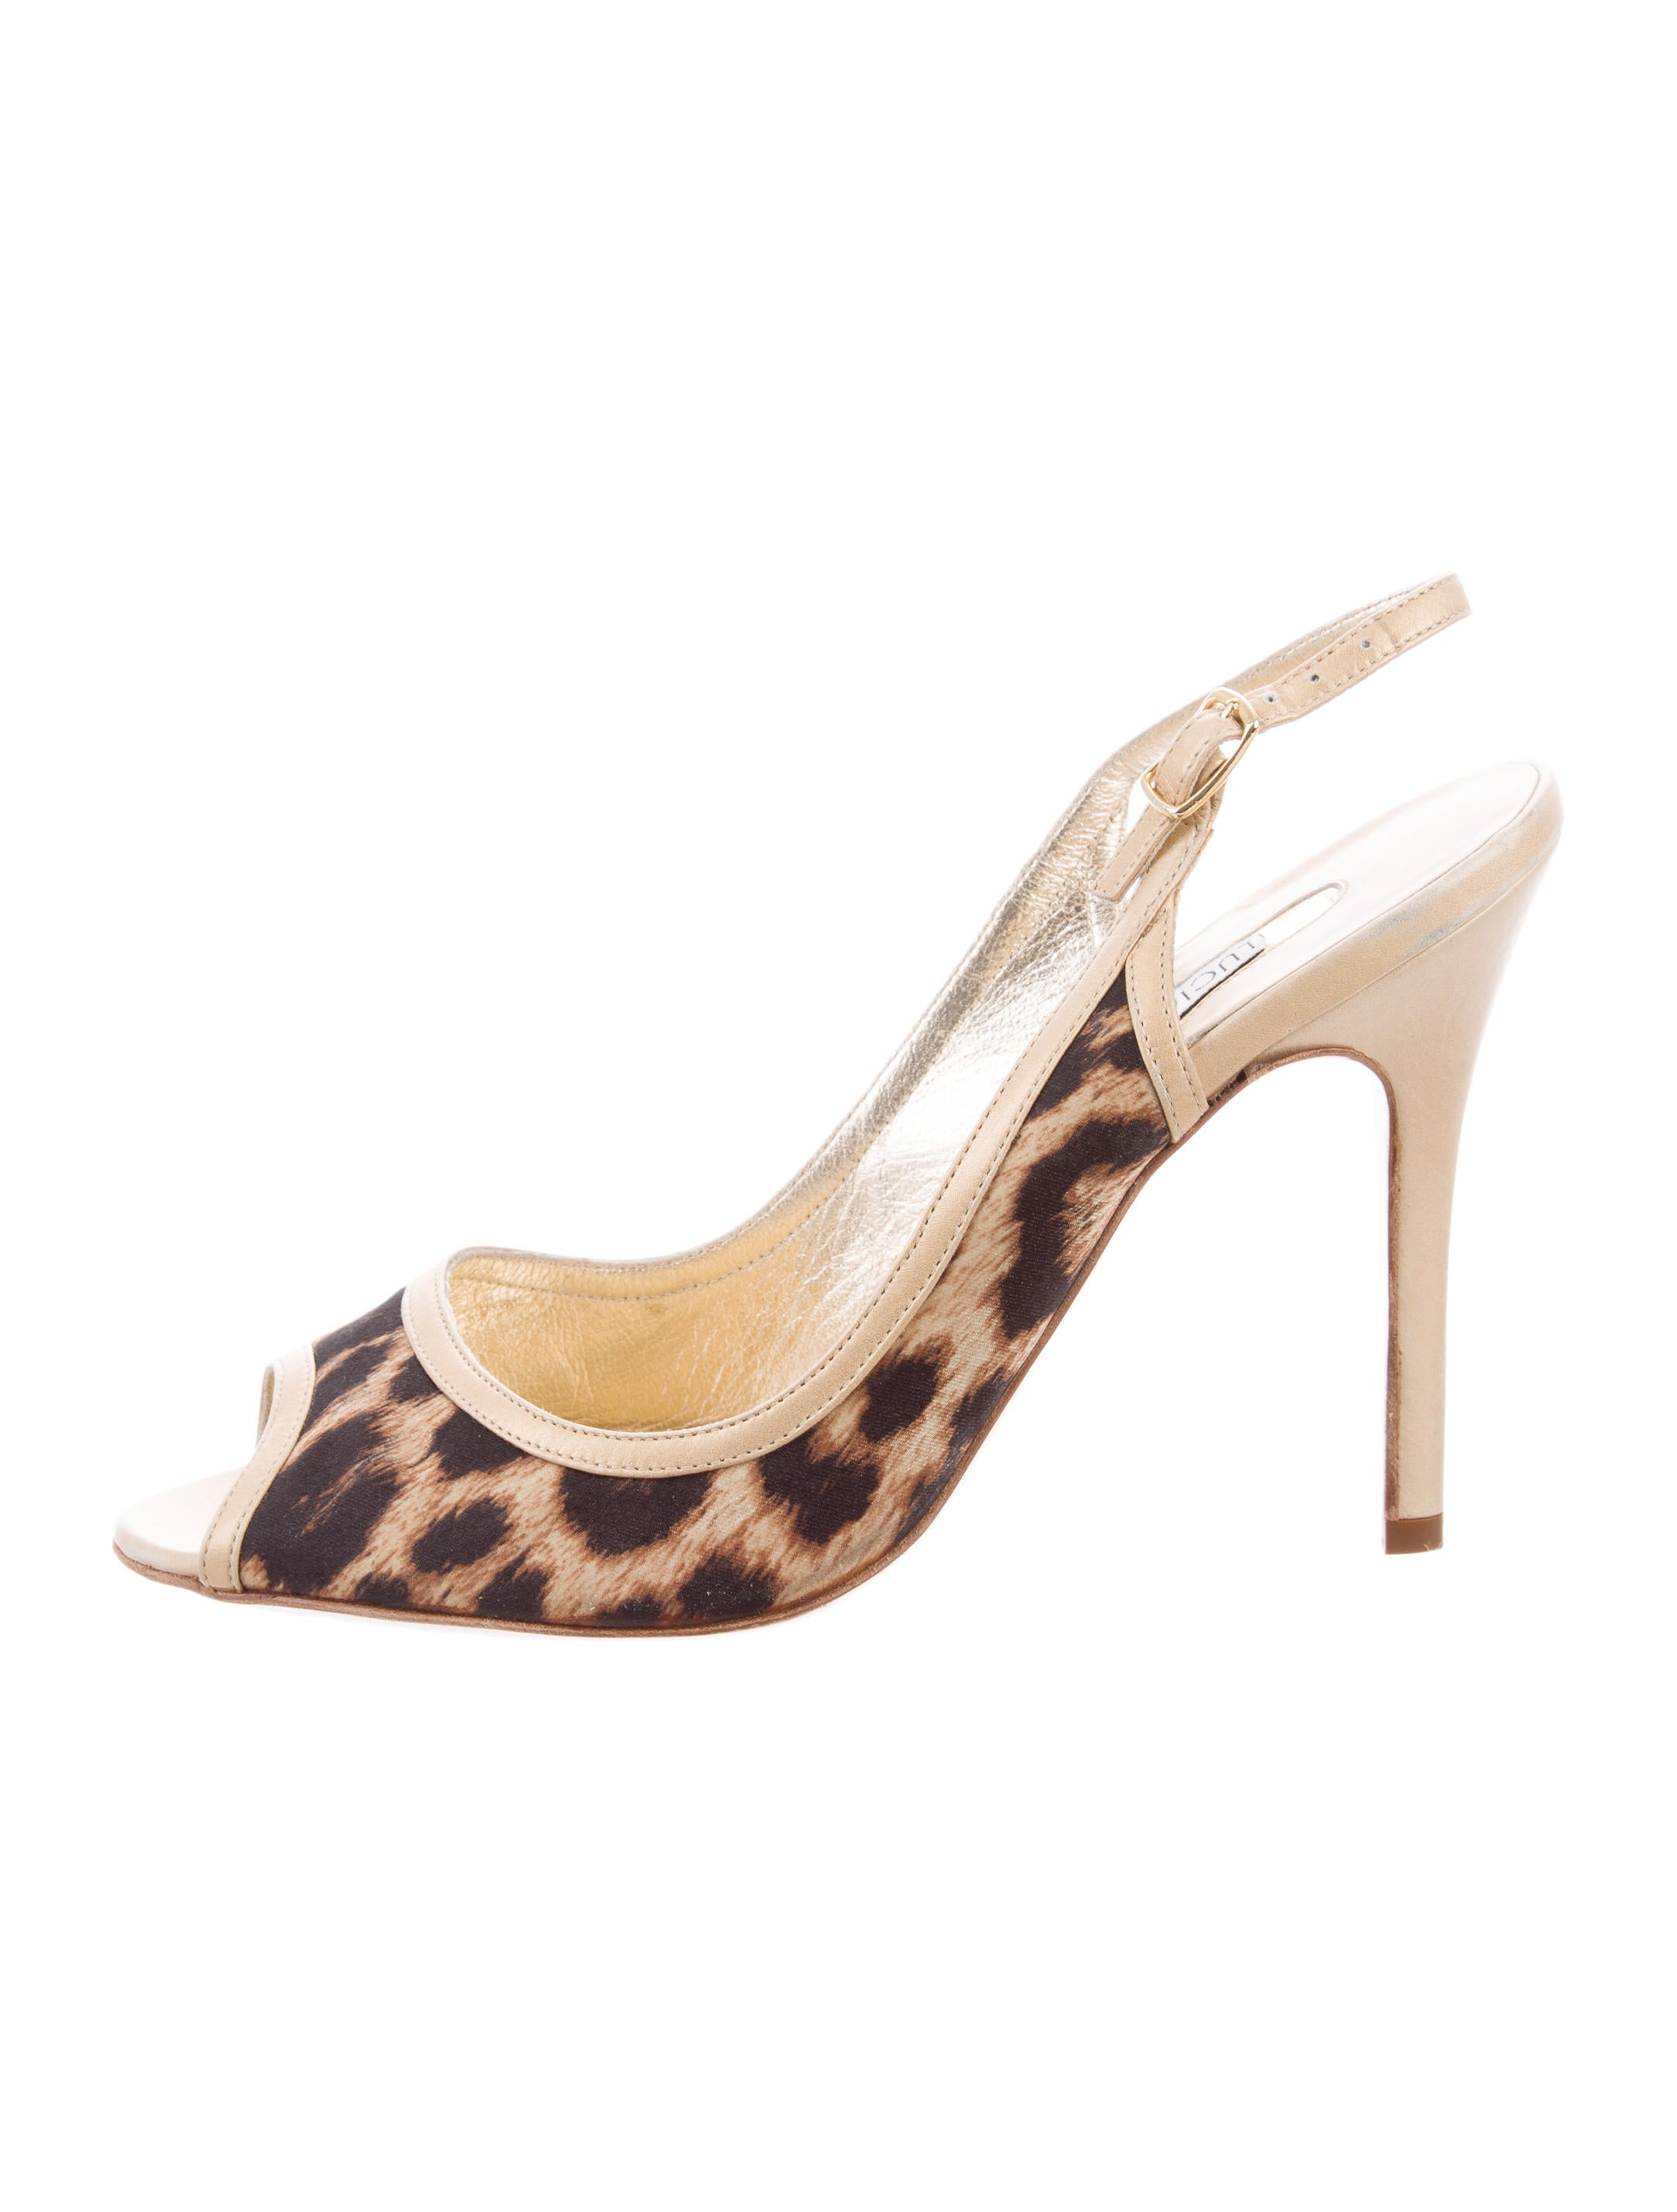 Luciano Padovan Suede Slingback Pumps cheap sale online ZYE5x2aTtd